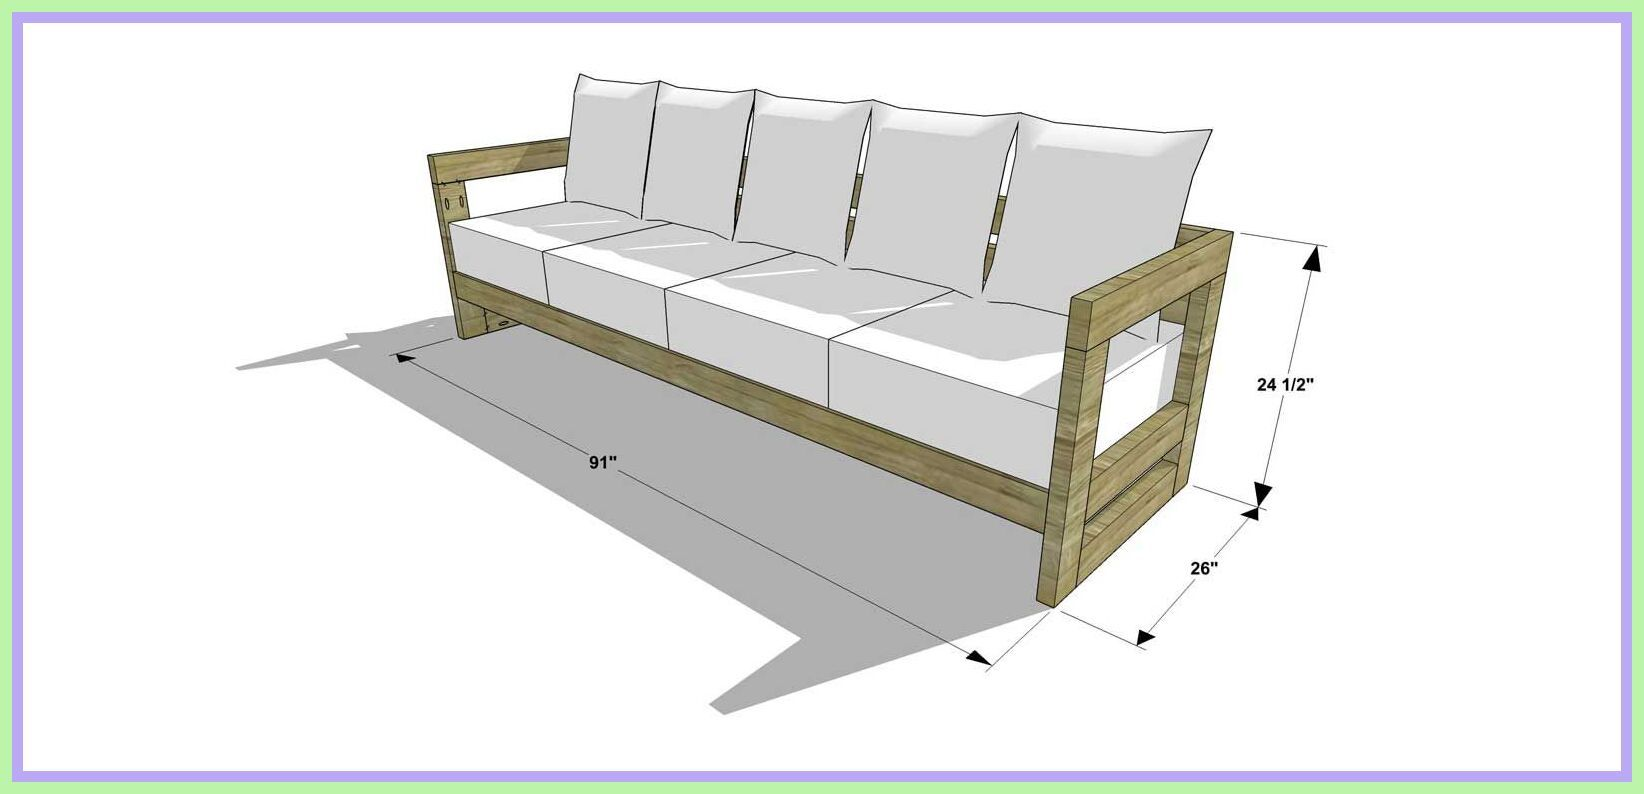 118 Reference Of Sofa Chair Blueprints In 2020 Diy Furniture Plans Outdoor Sofa Furniture Plans